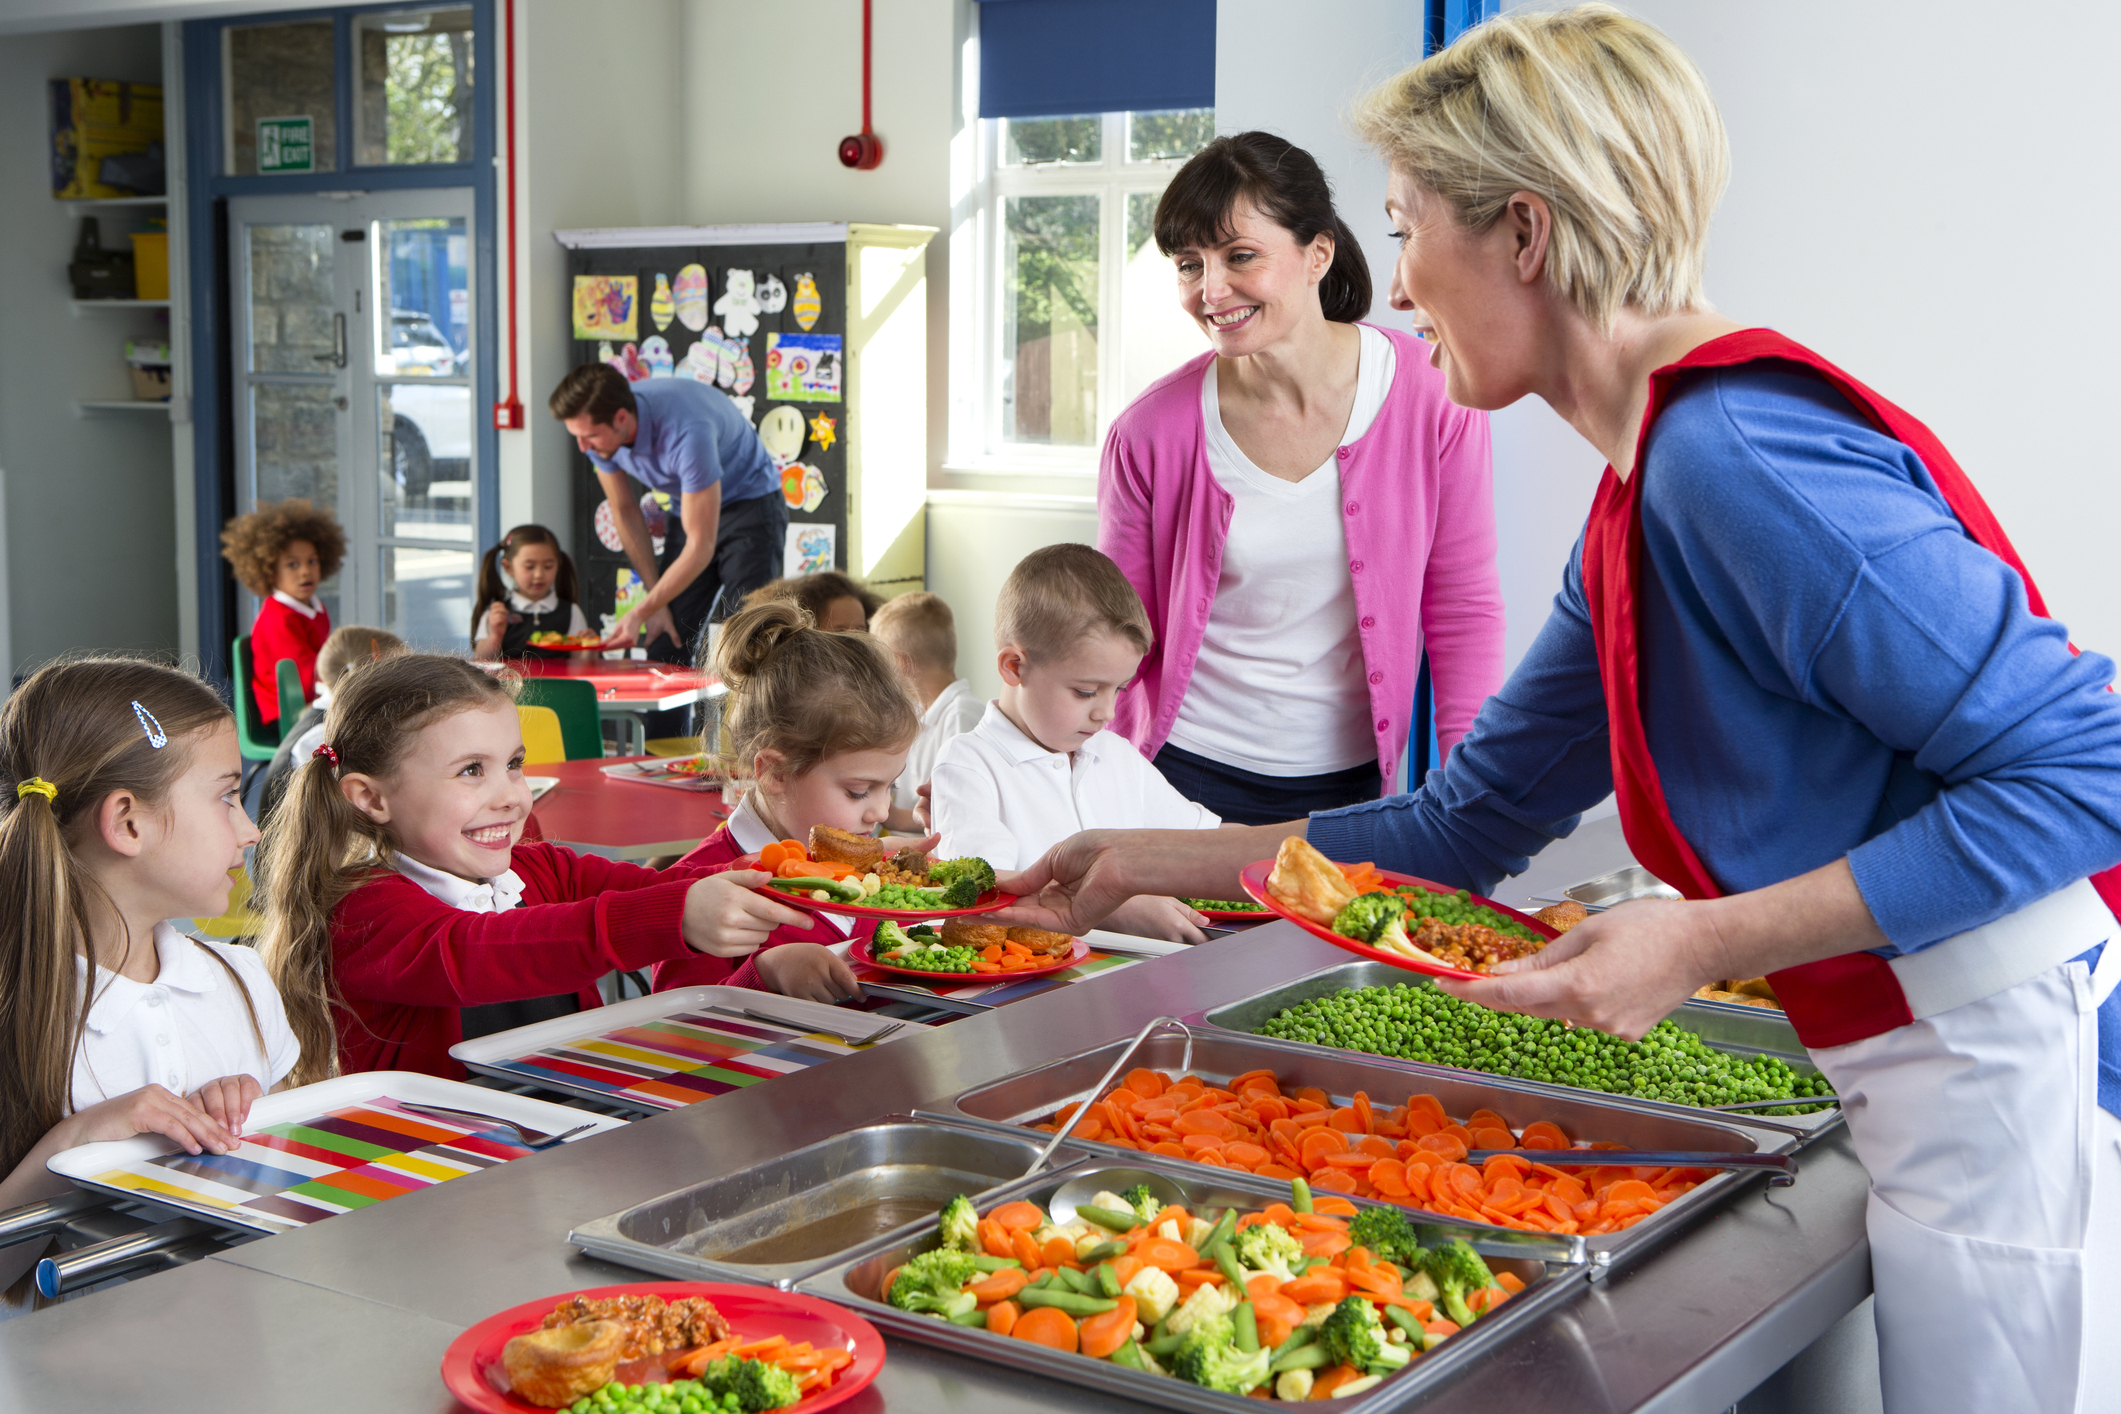 Dinner is served out to children as they line up at a school cafeteria.